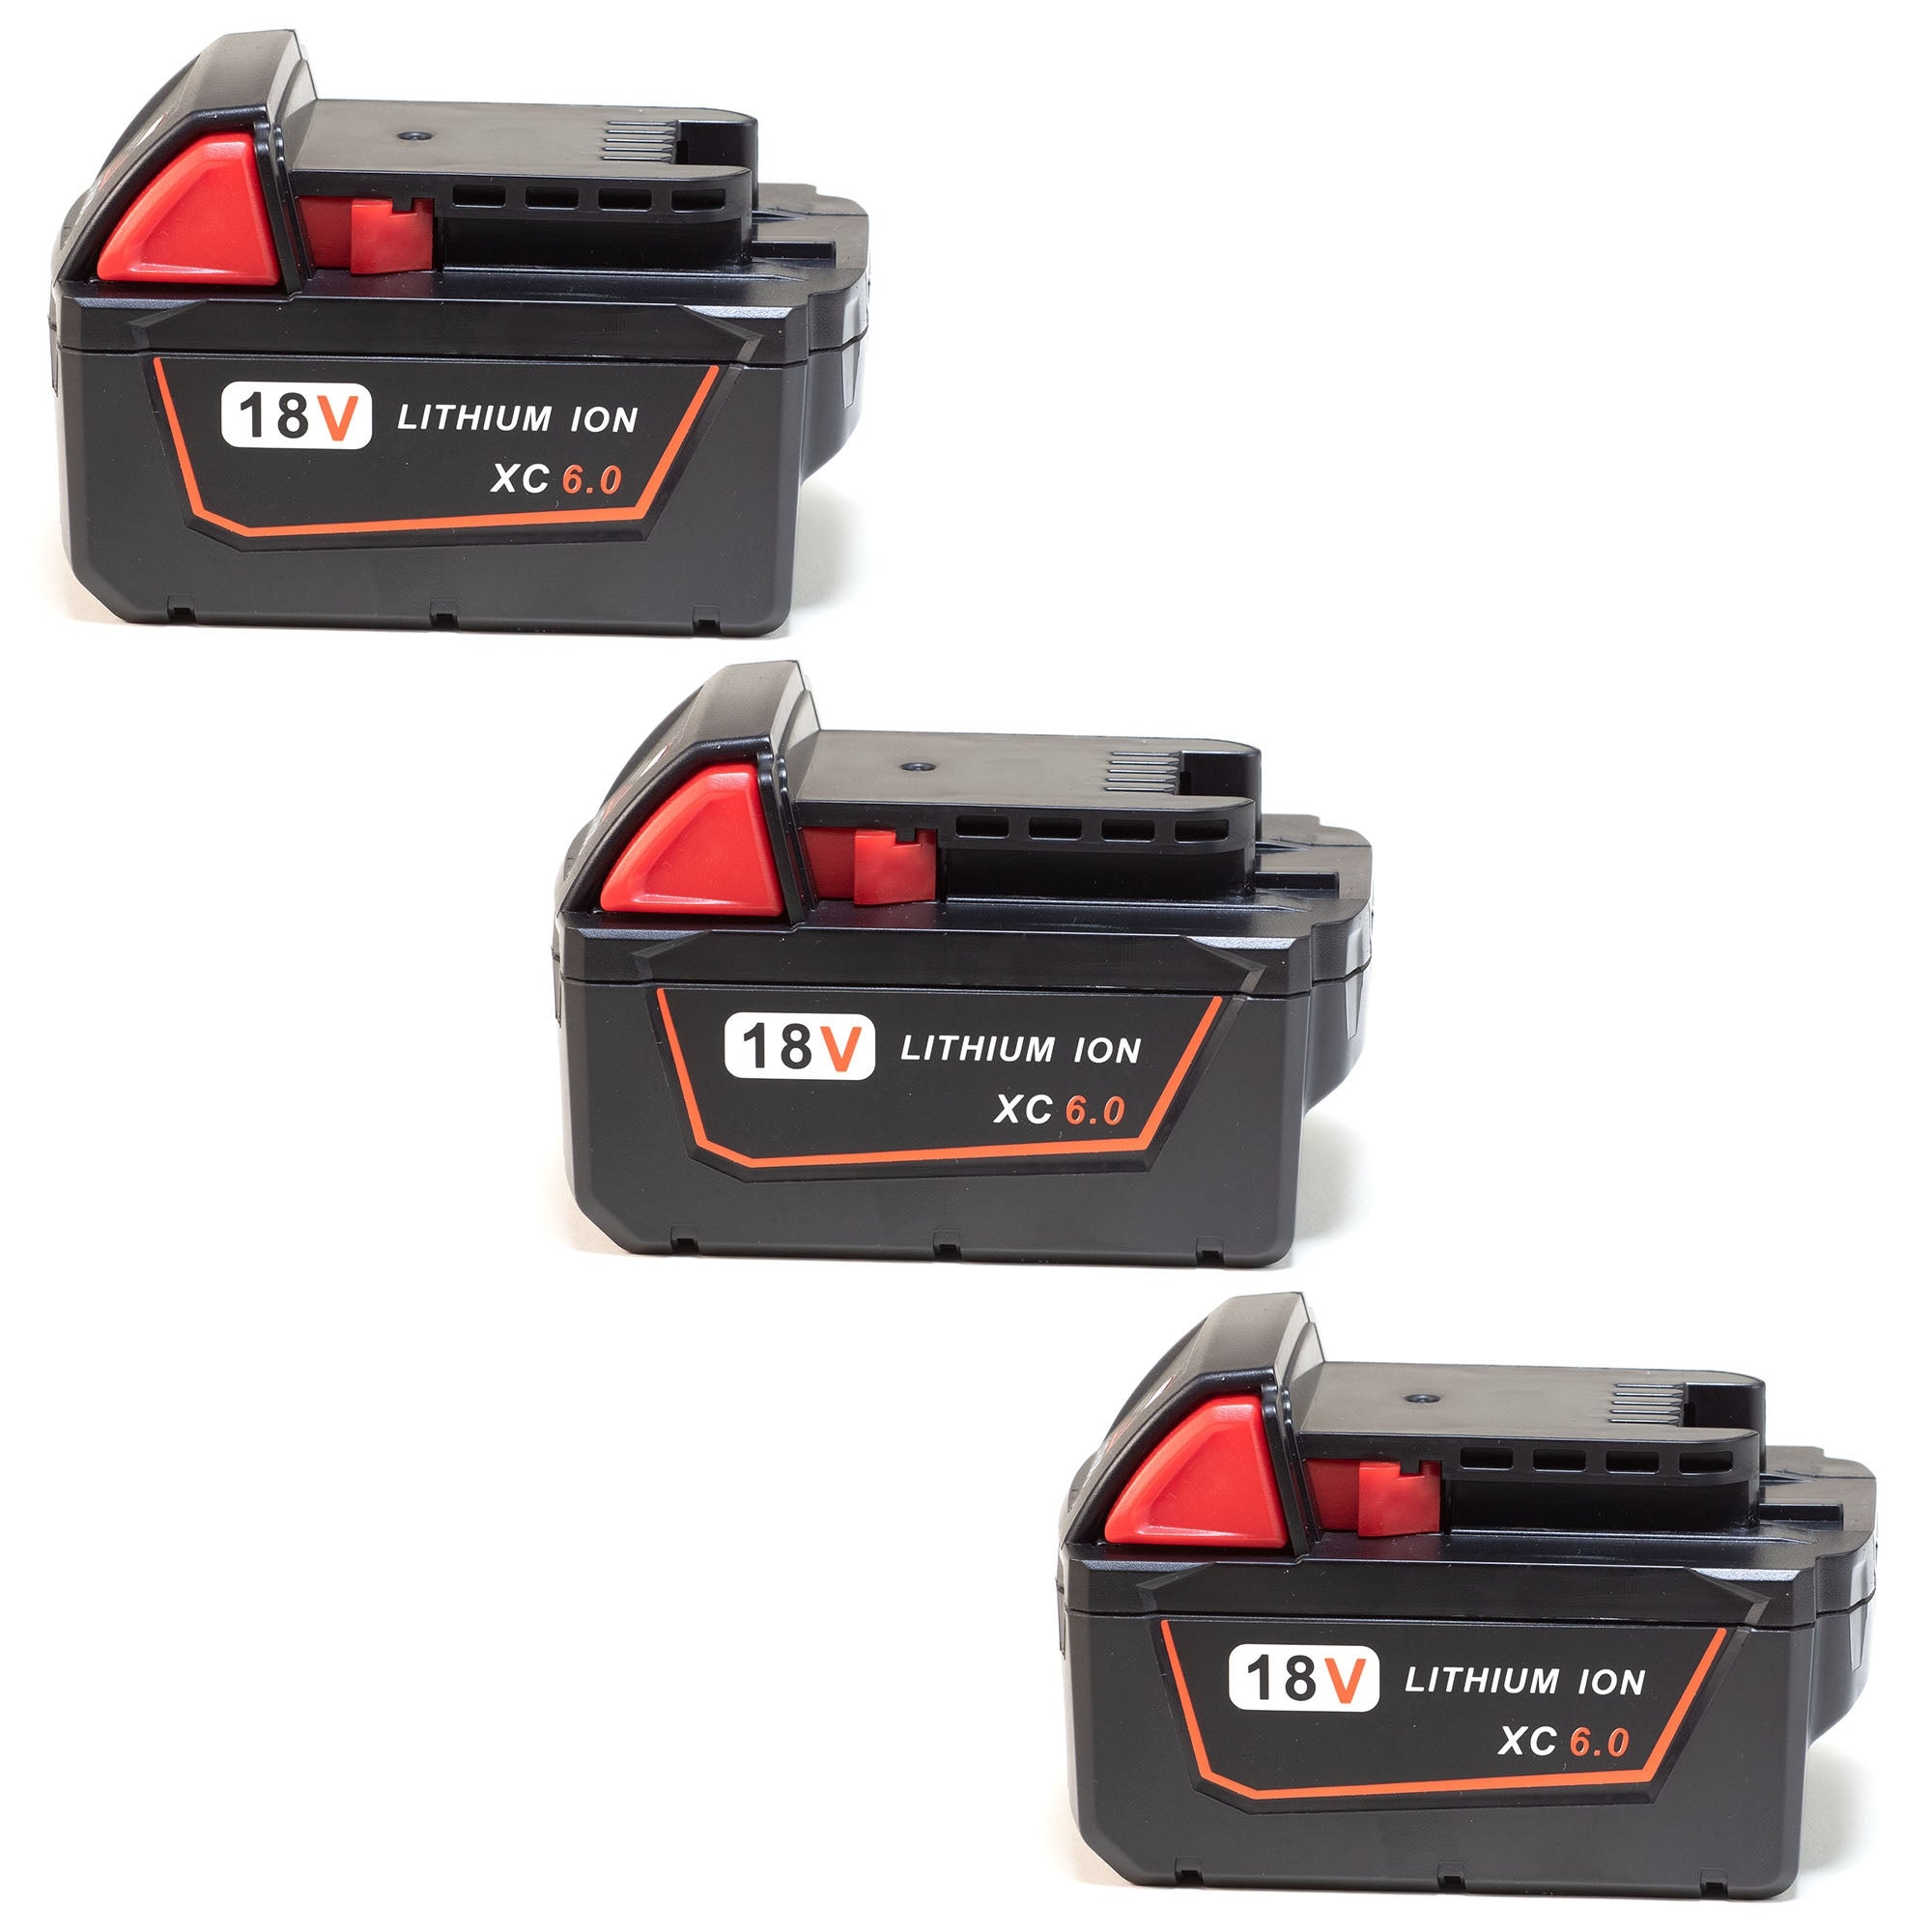 Replacement 6000mAh Battery for Milwaukee 2706-20 / 2740-21CT / 2787-22 Power Tools (3 Pk)